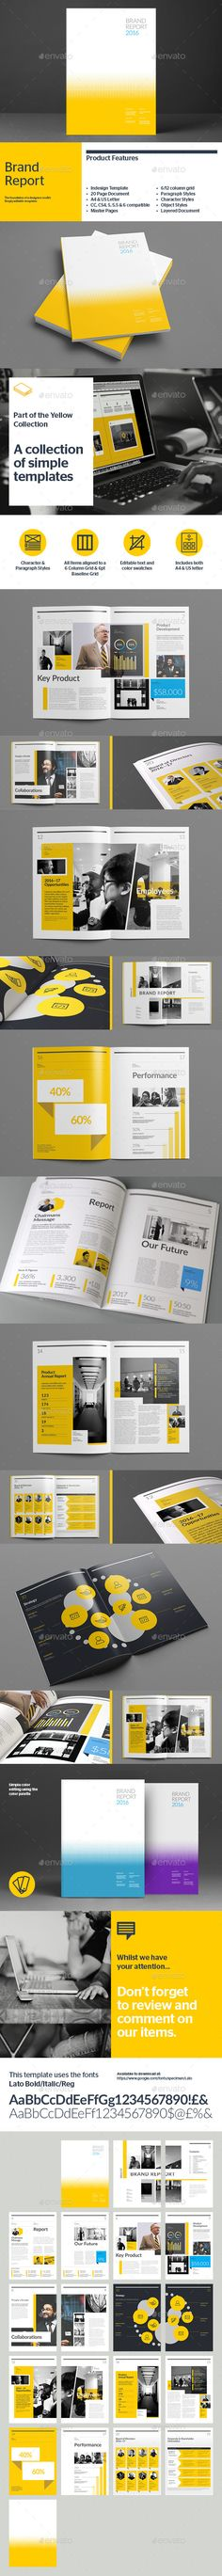 Blue Report Template | Brochures, Annual reports and Brochure template